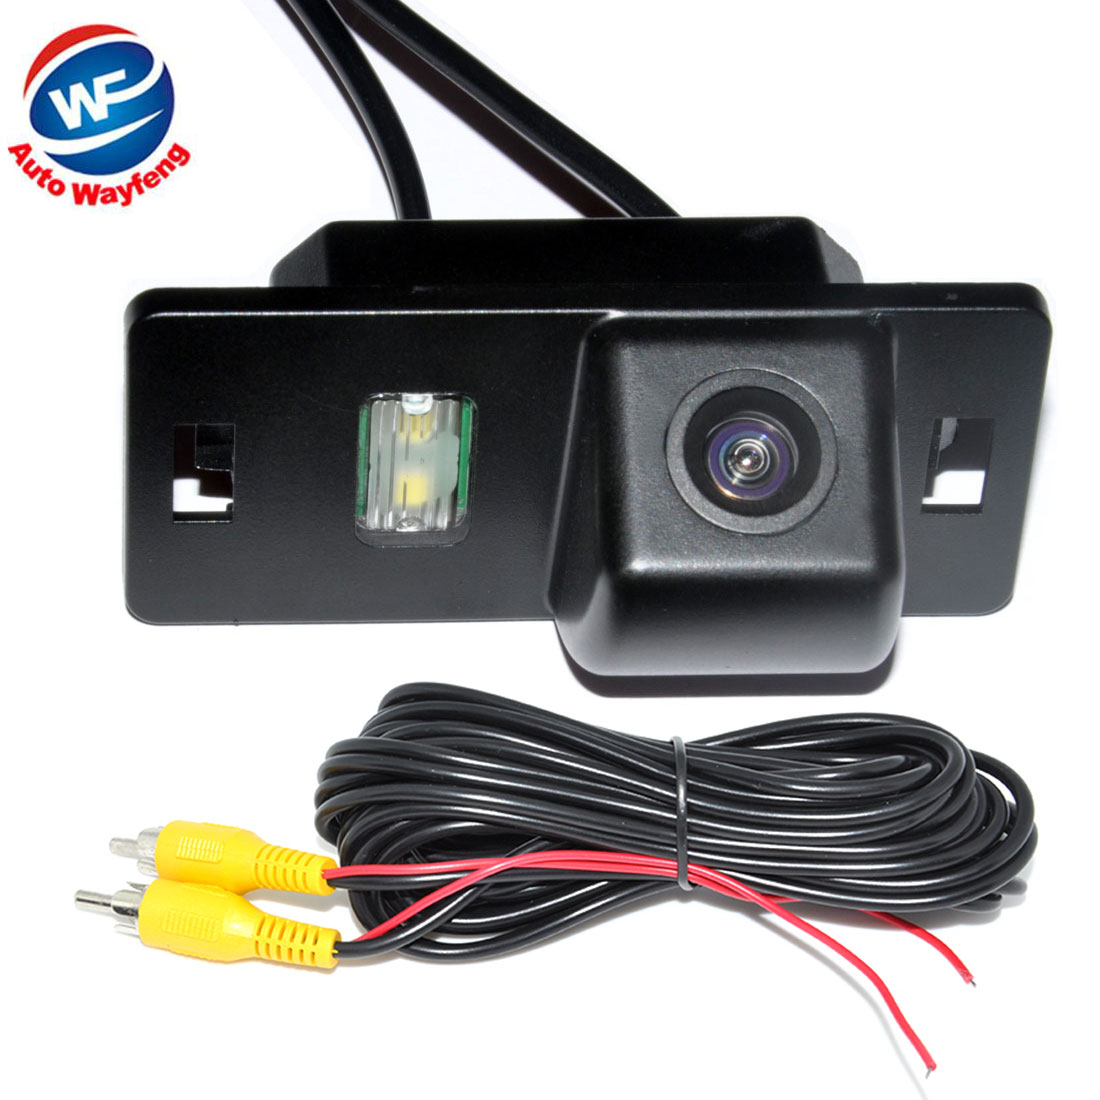 Car Vehicle Rearview Camera For Audi A3/A4(B6/B7/B8) /Q5/Q7/A8/S8 Backup Review Rear View Parking Reversing Camera(China (Mainland))